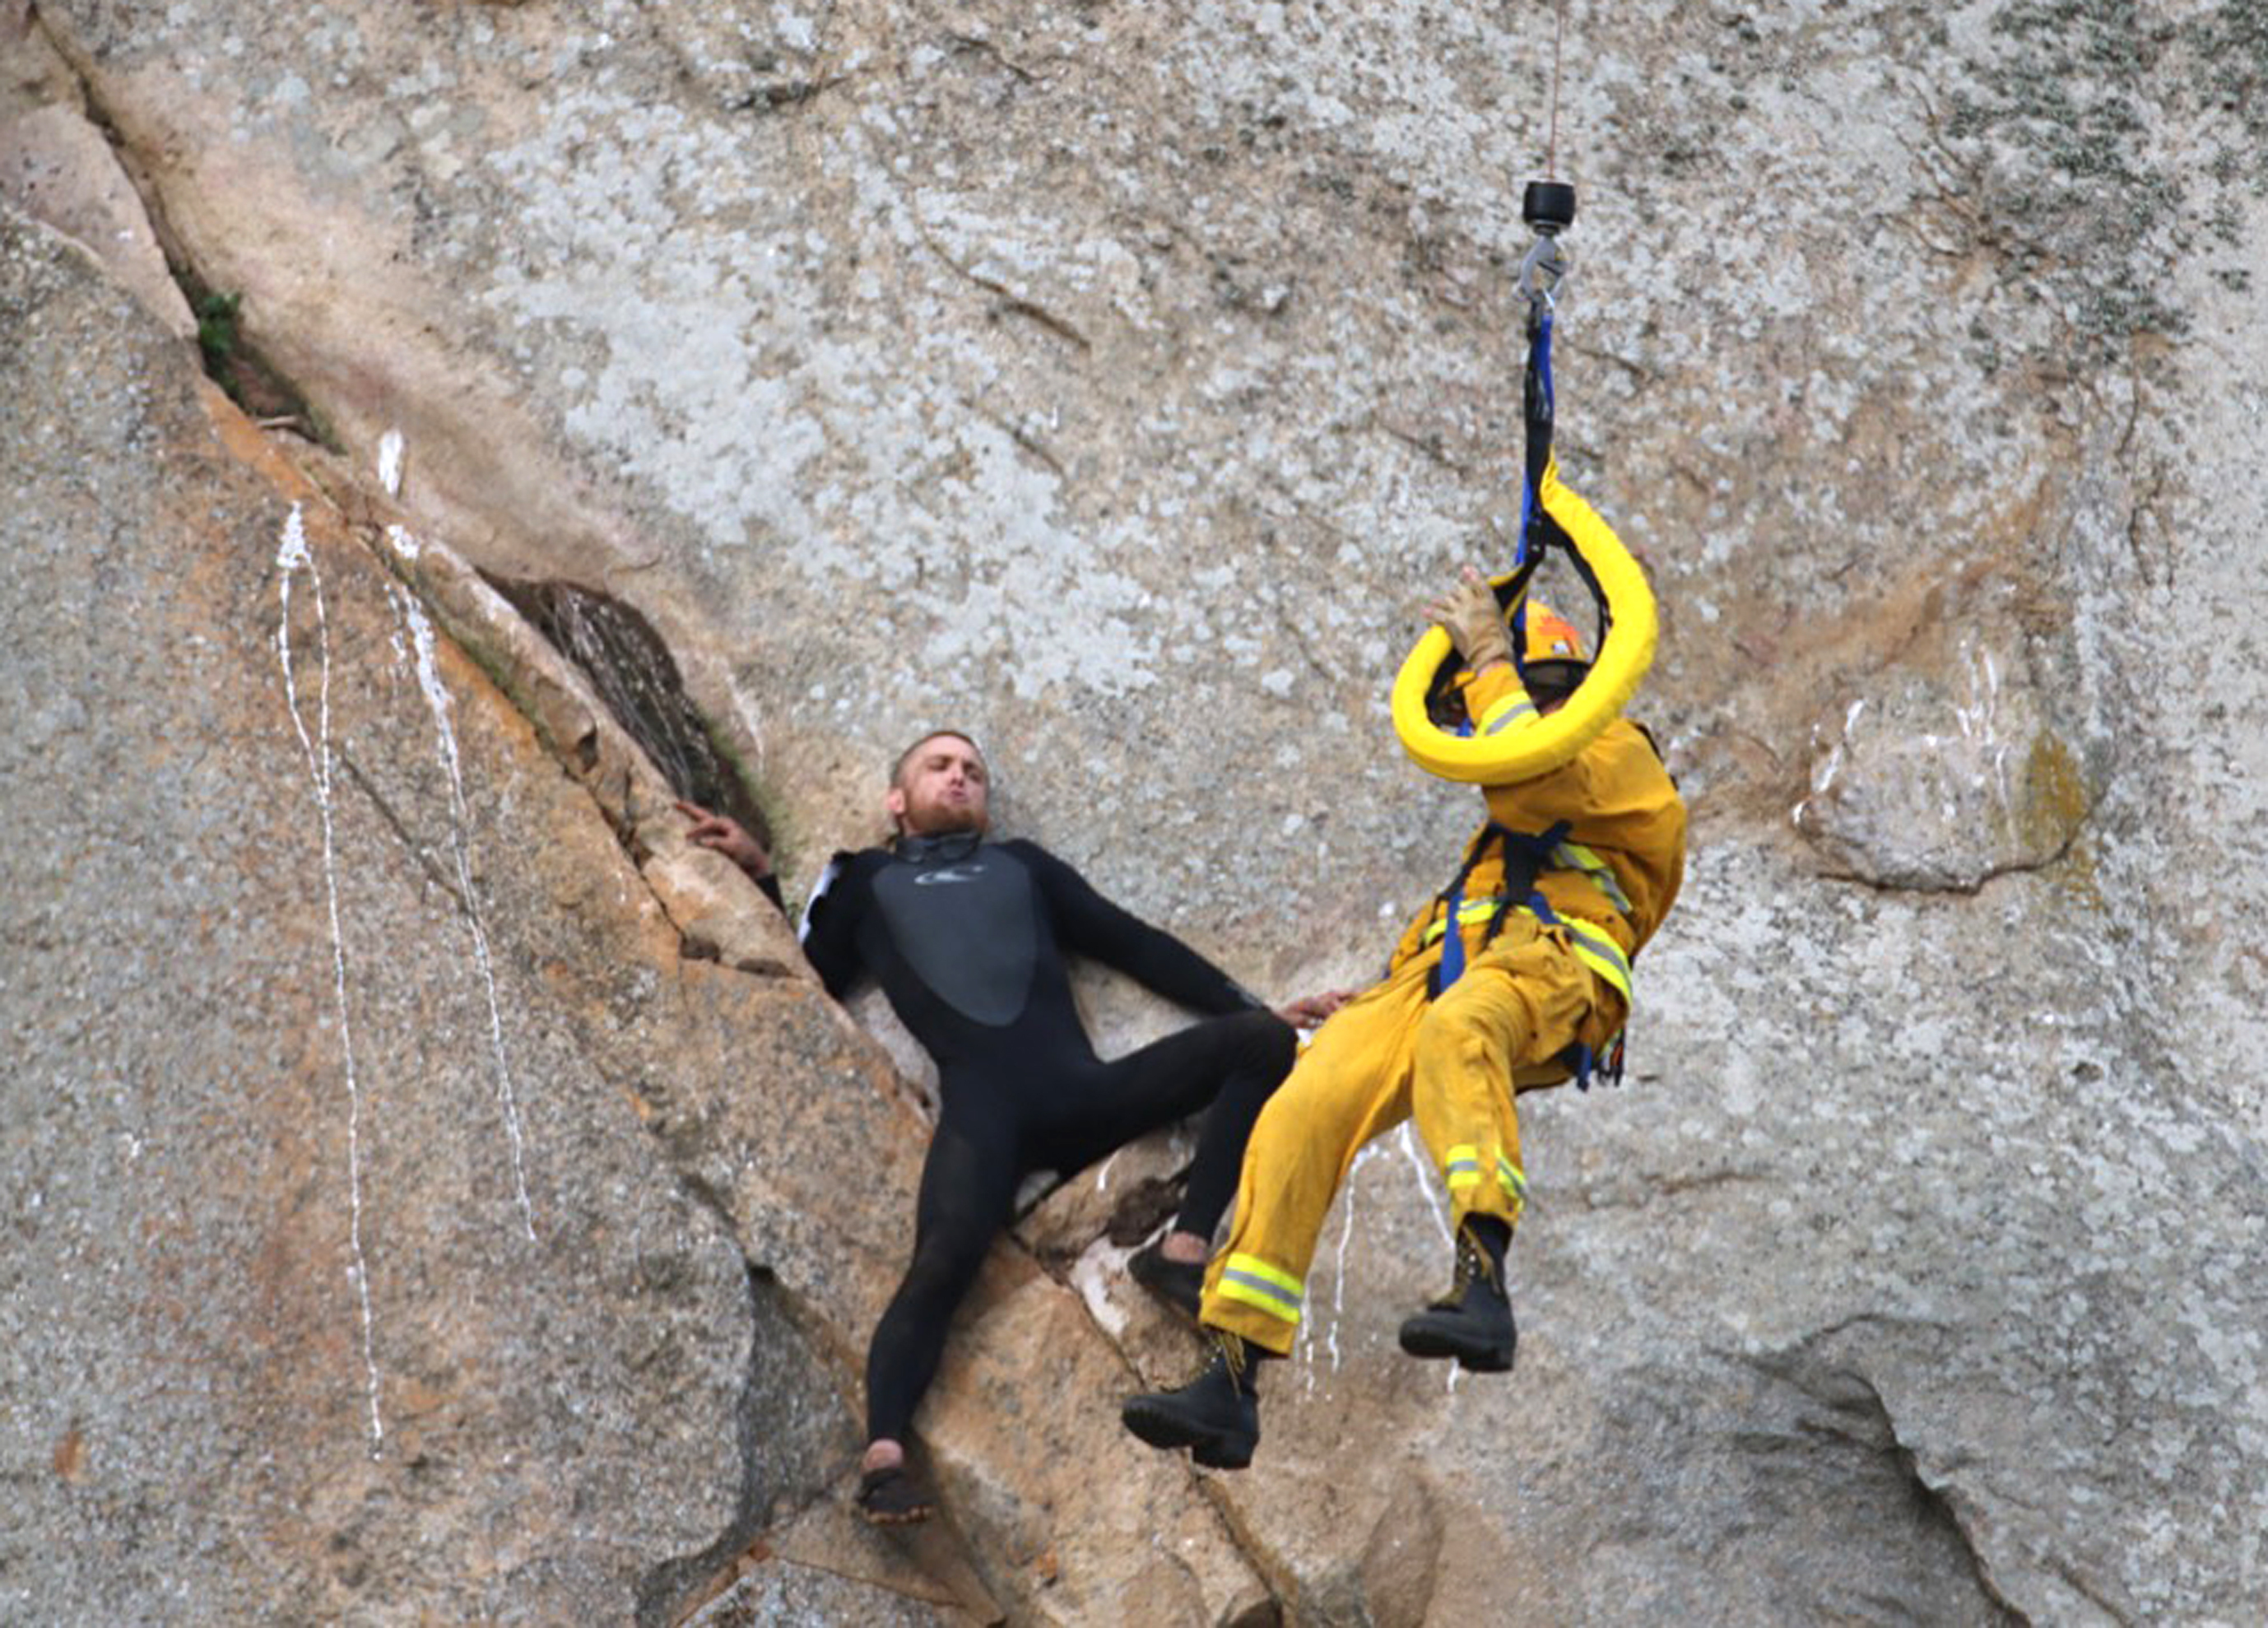 In this photo provided by Bob Isenberg, Michael Banks is stranded on a ledge some 80 feet off the ground on Morro Rock, a landmark in Morro Bay, Calif., on Thursday, April 7, 2016.